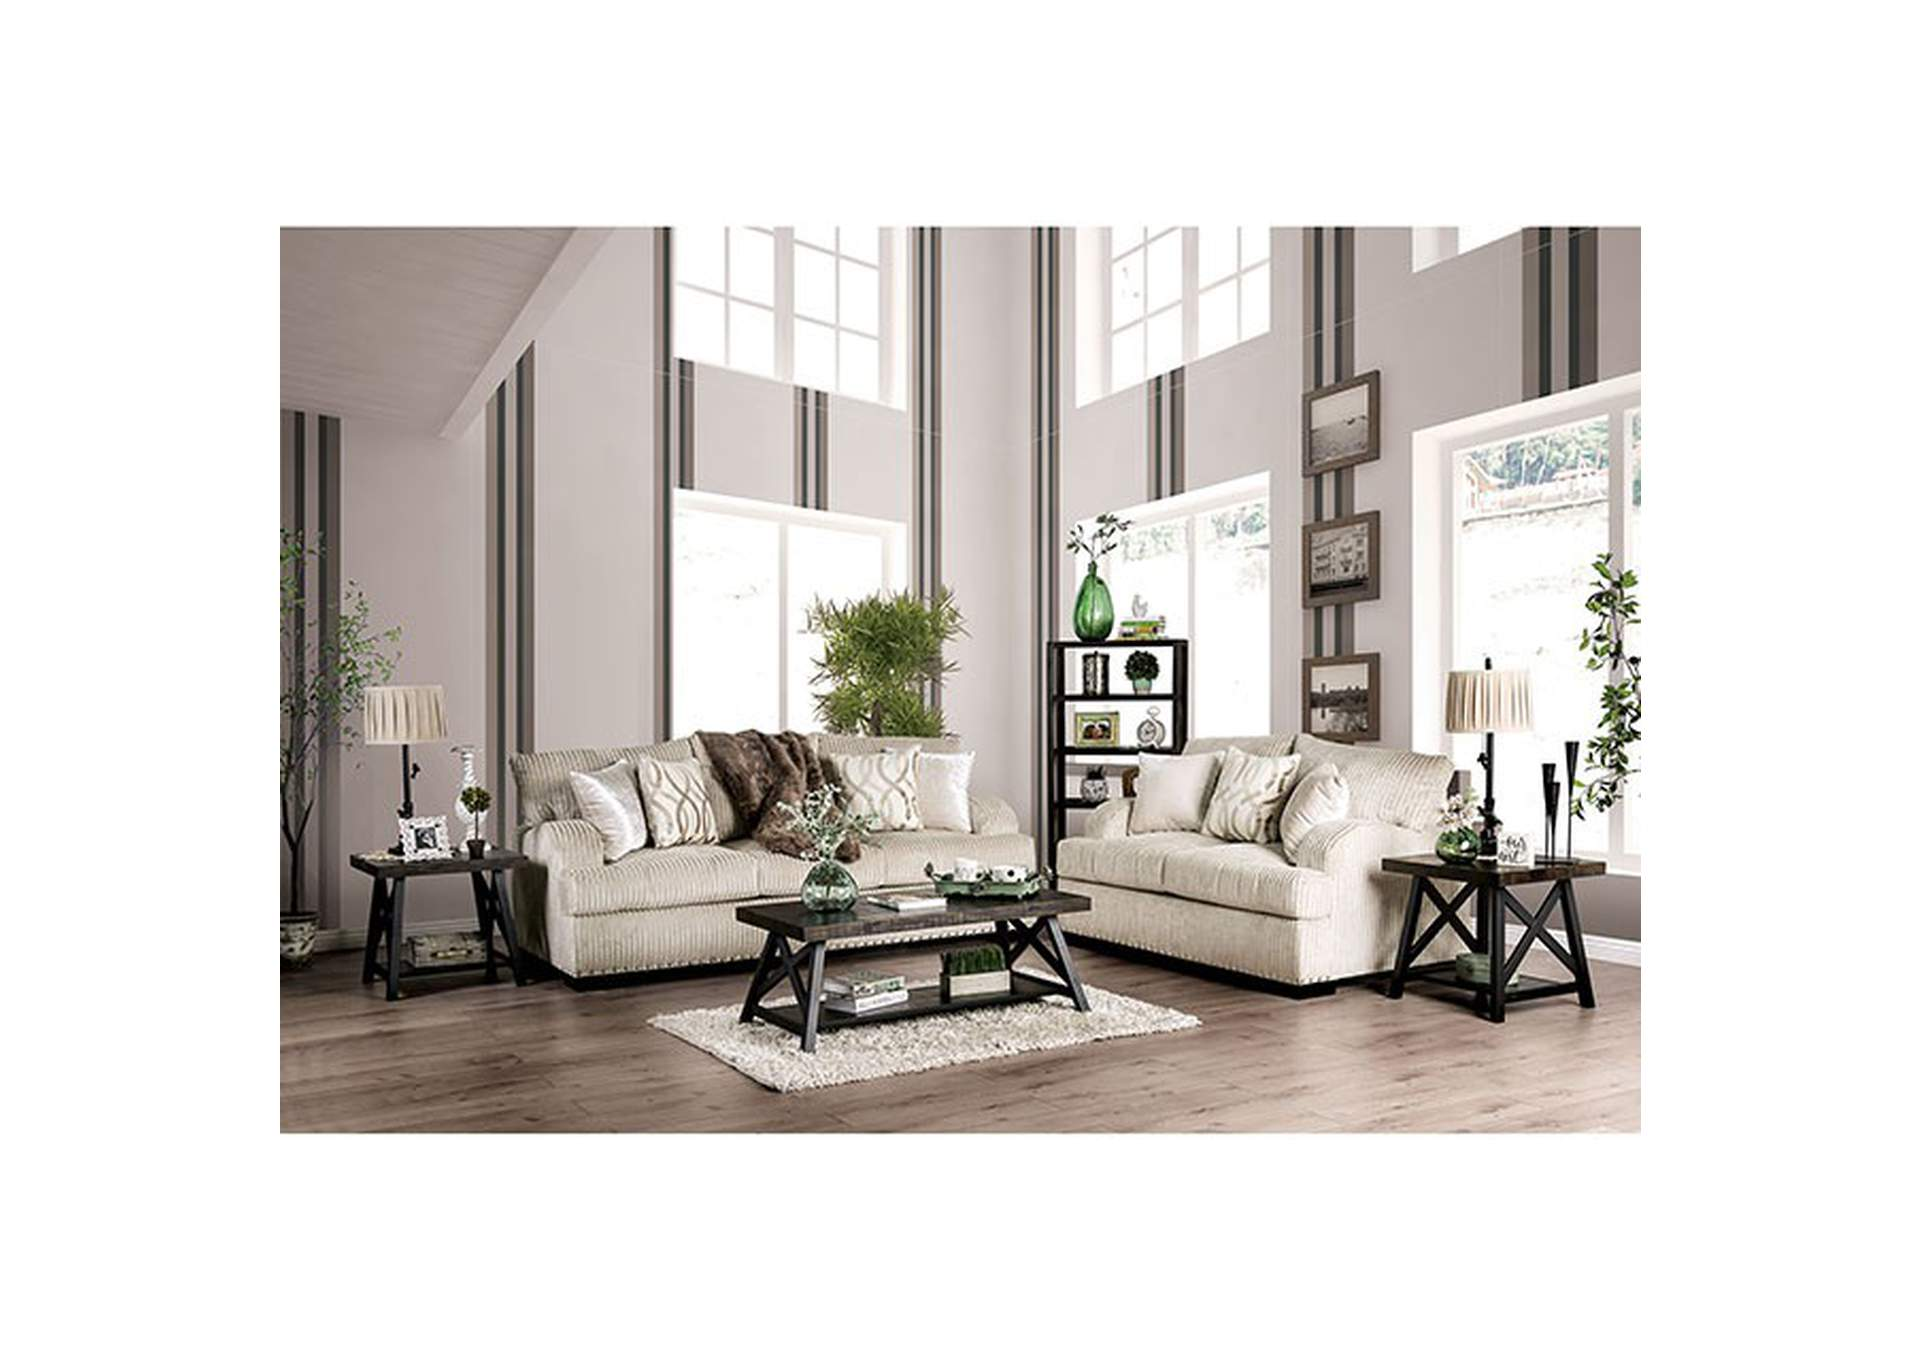 Zayla Golden Ivory Loveseat,Furniture of America